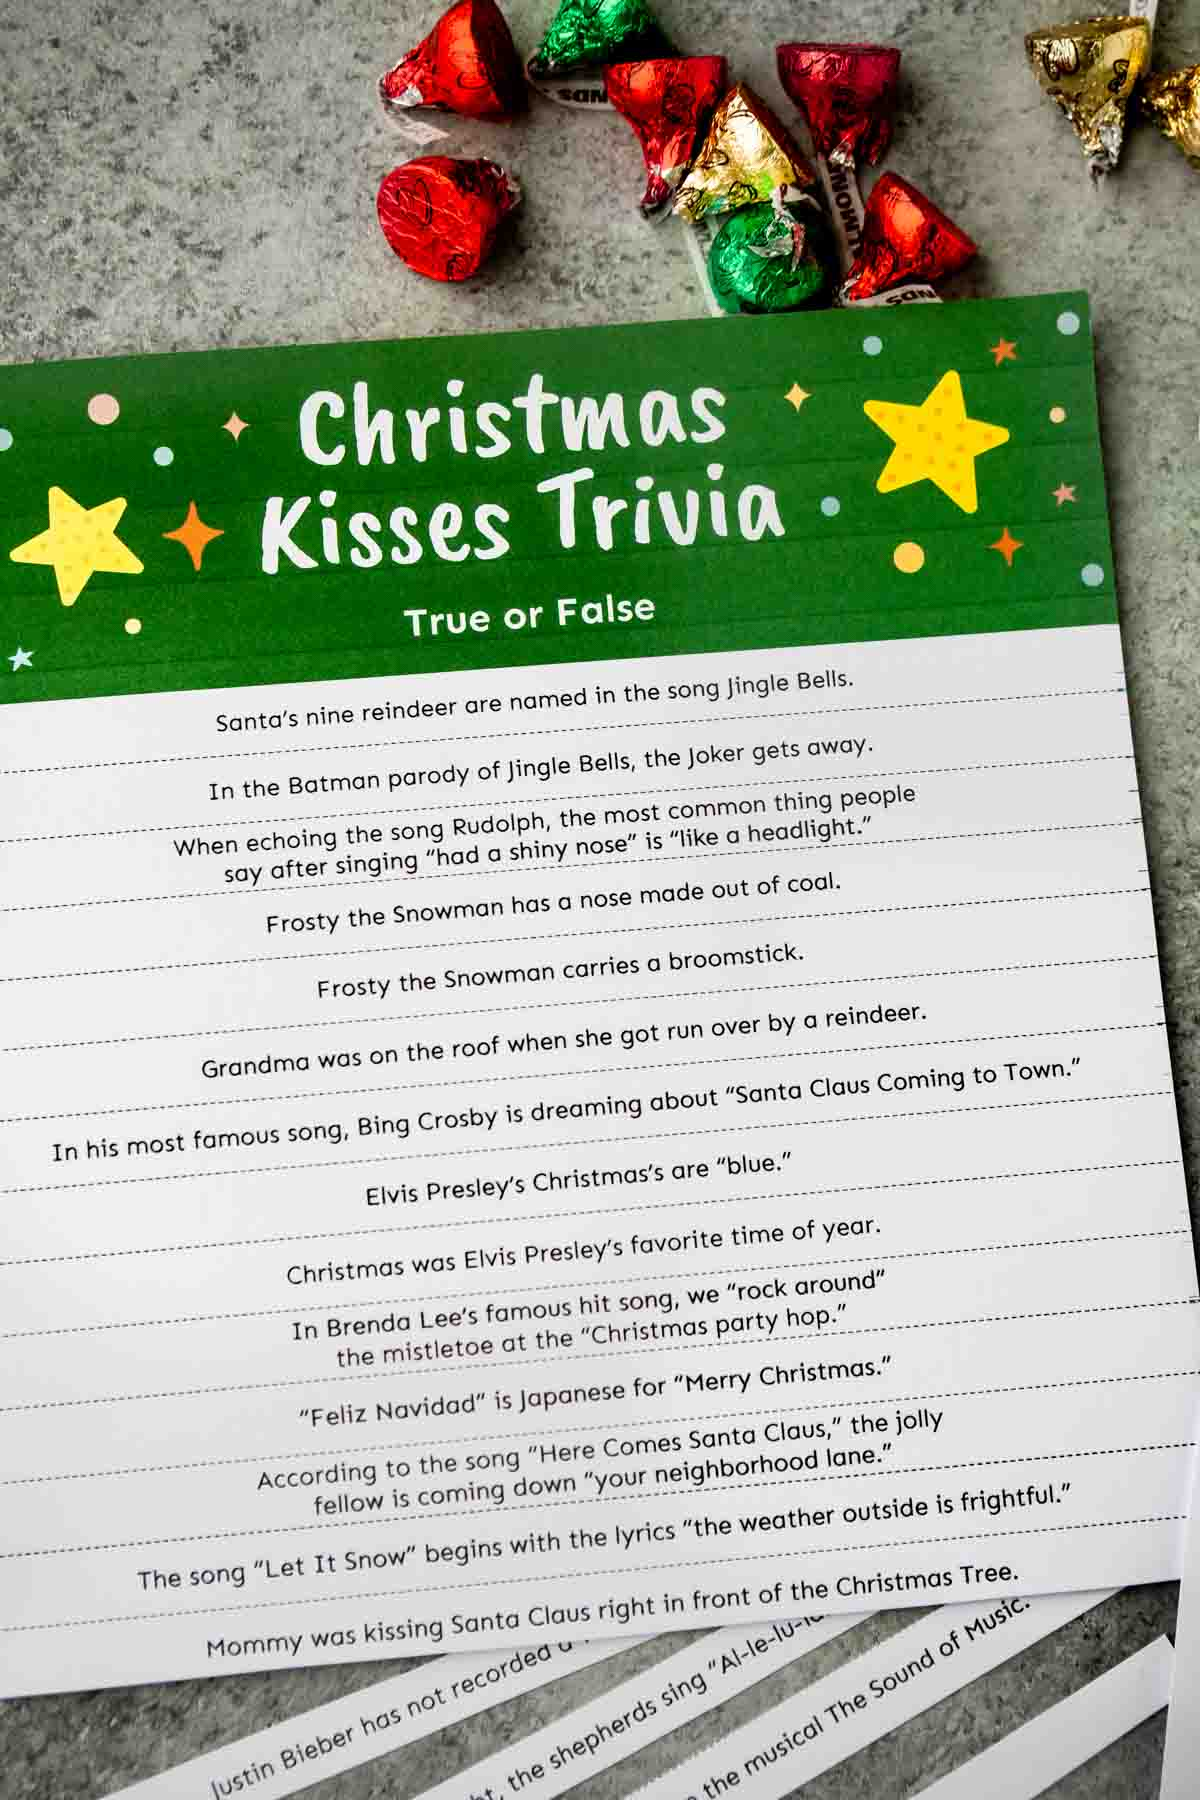 Questions for a Christmas trivia game